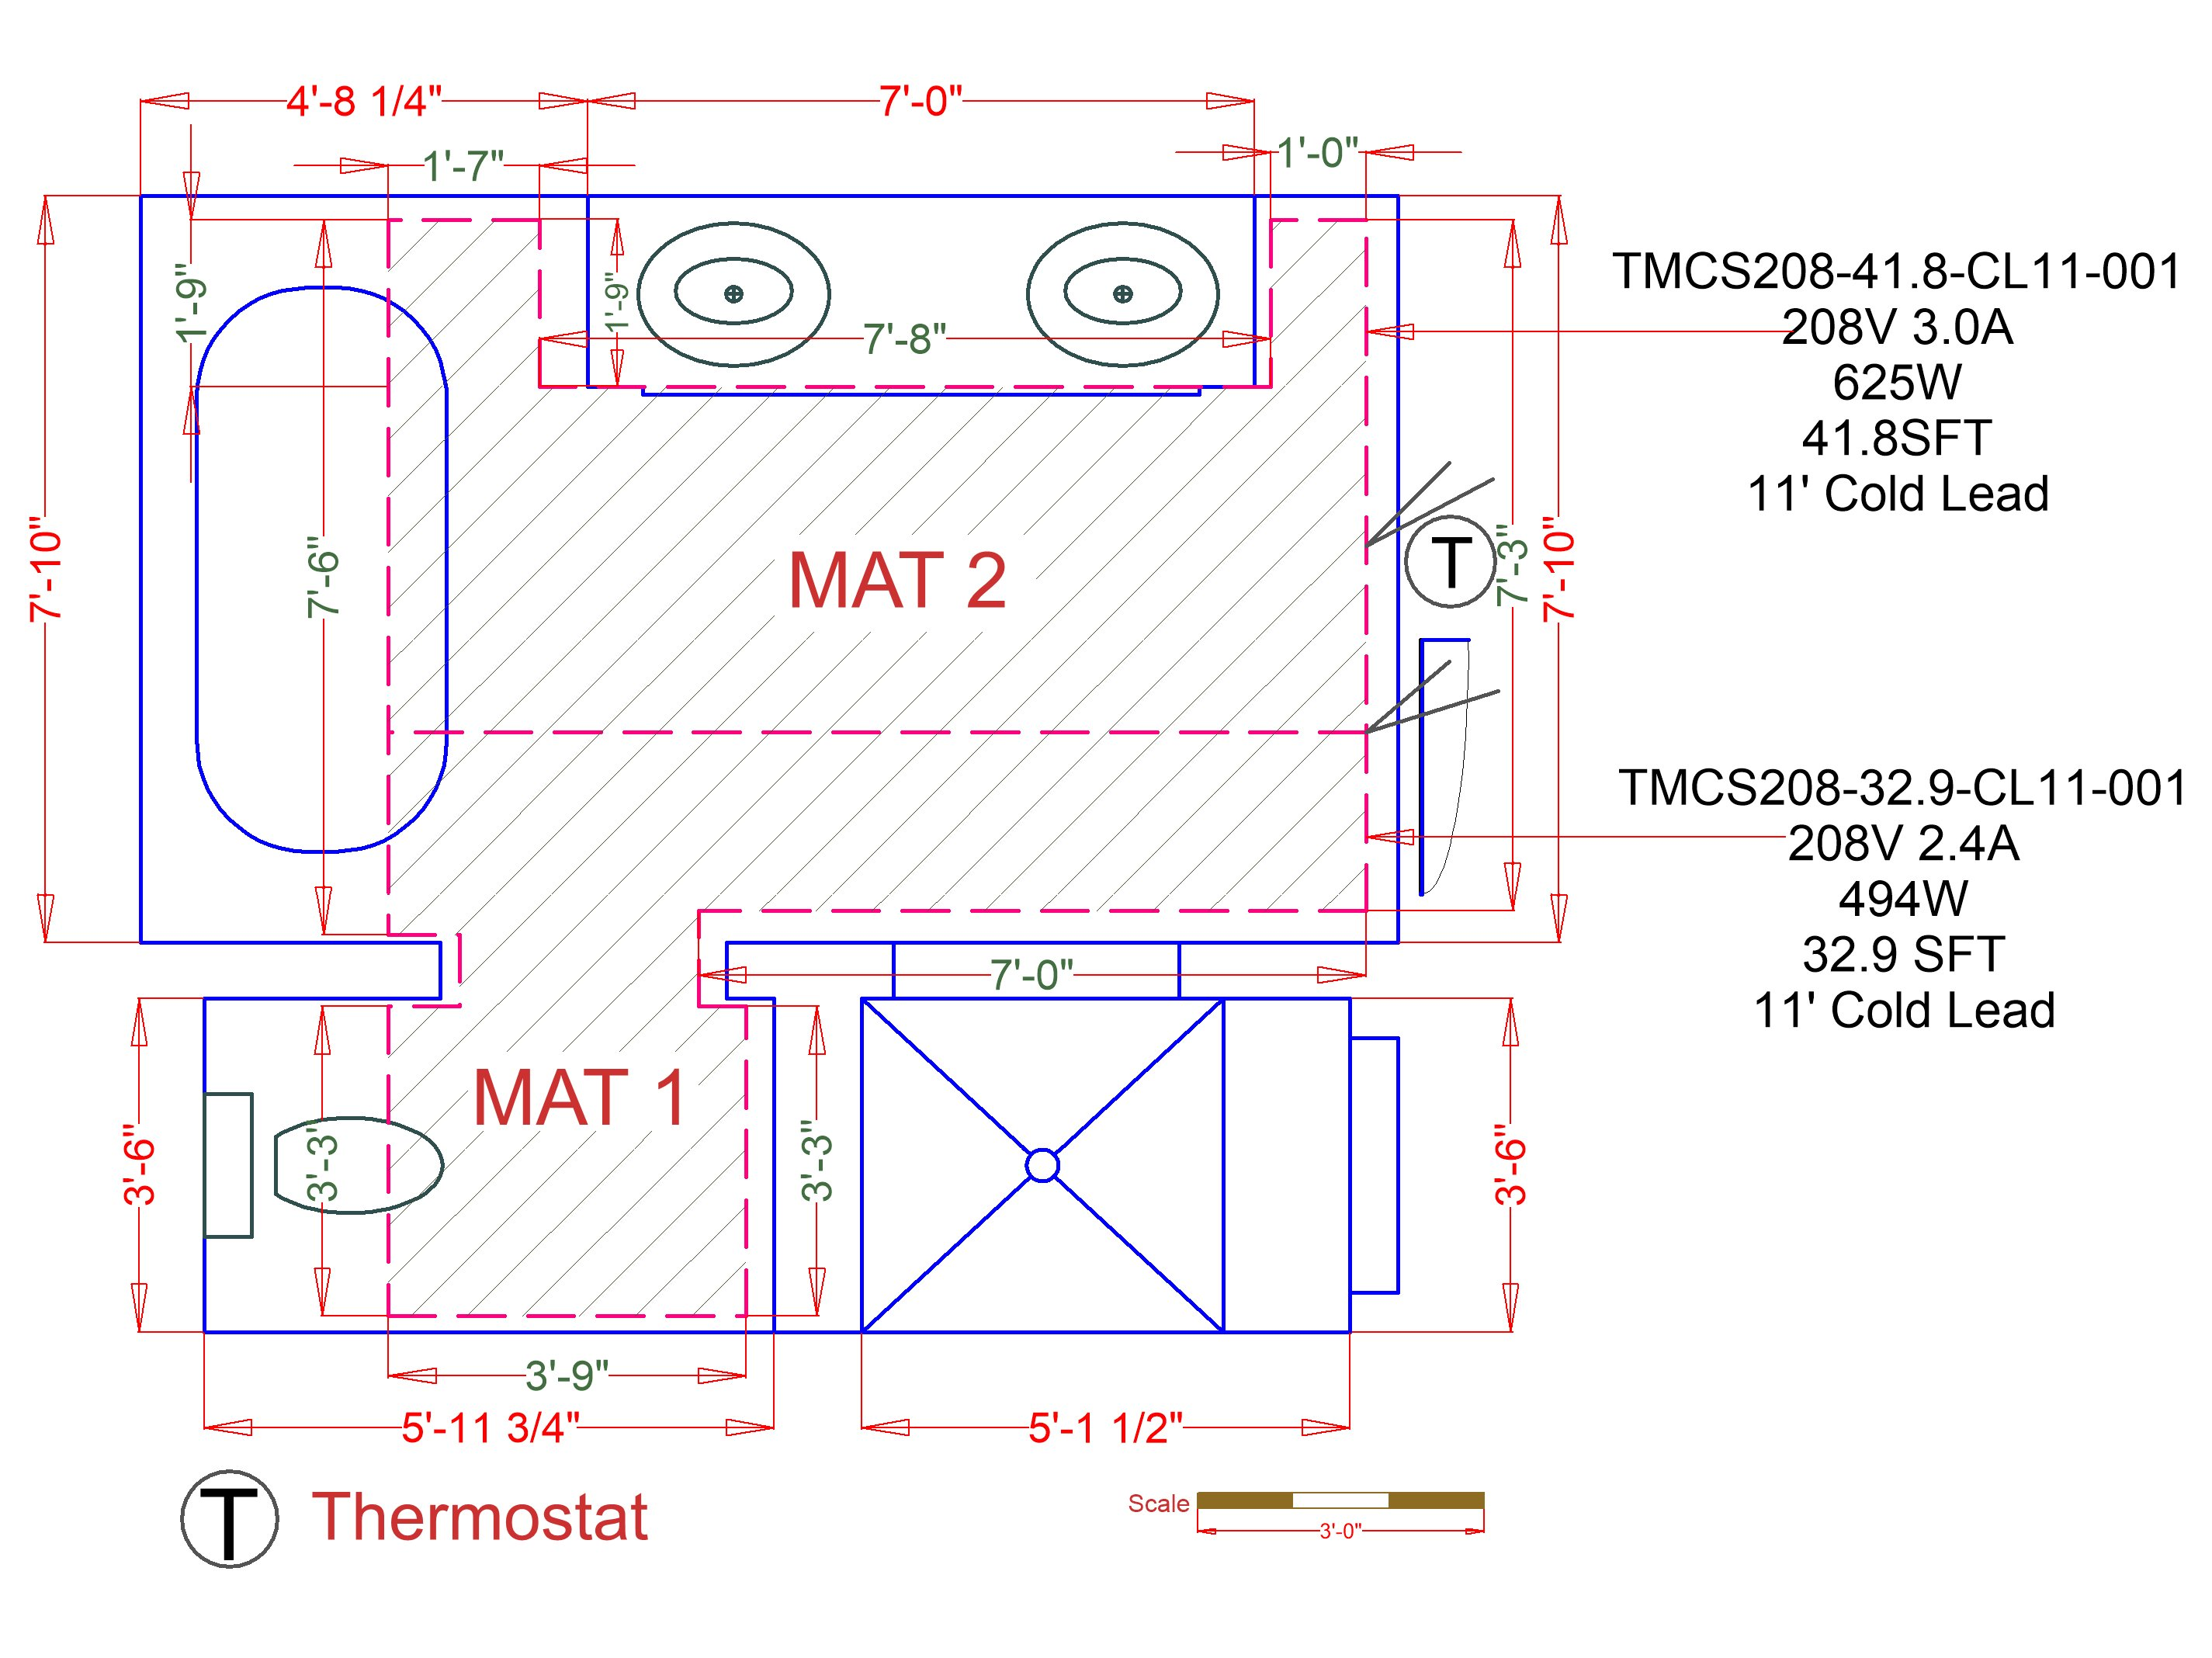 Circuit Check For Testing Floor Heating Systems Warmlyyours Usa Radiant Ceiling Heat Wiring Schematic Installation Plan Image